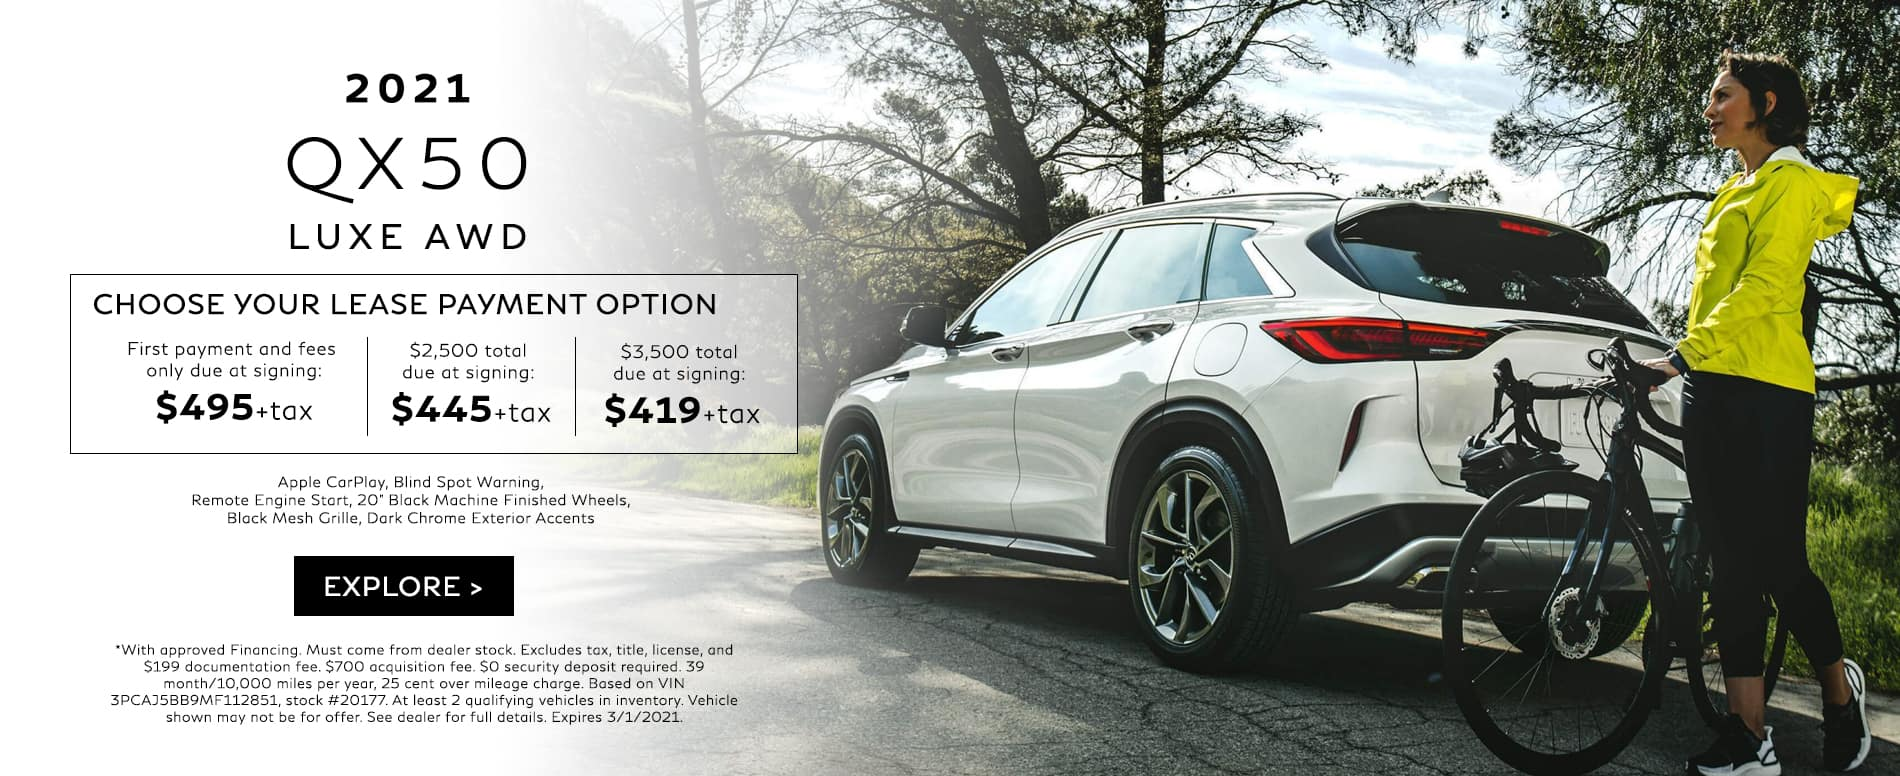 Choose your lease payment option on a new 2021 QX50 LUXE AWD. Hurry In today.